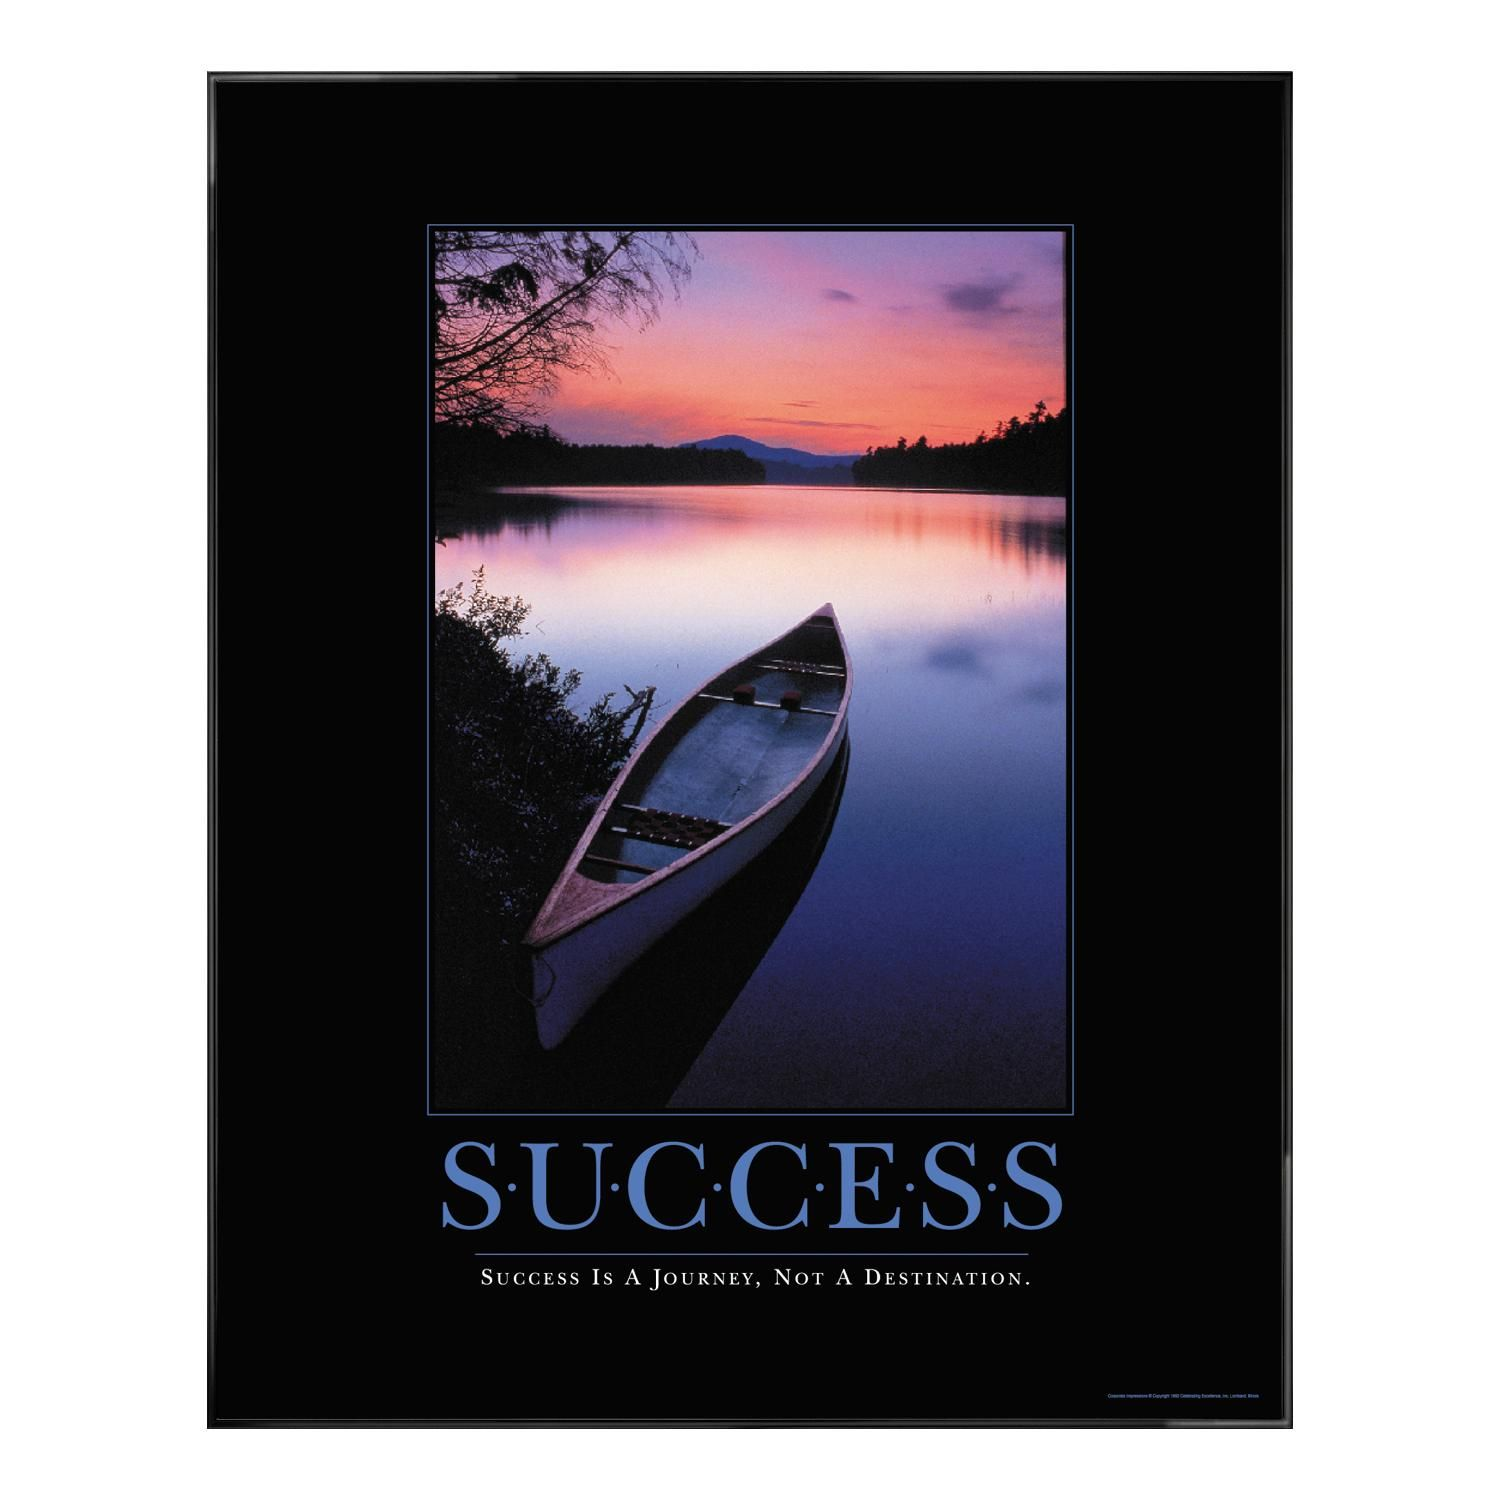 All Motivational Posters - Classic Motivational Posters - Success ...